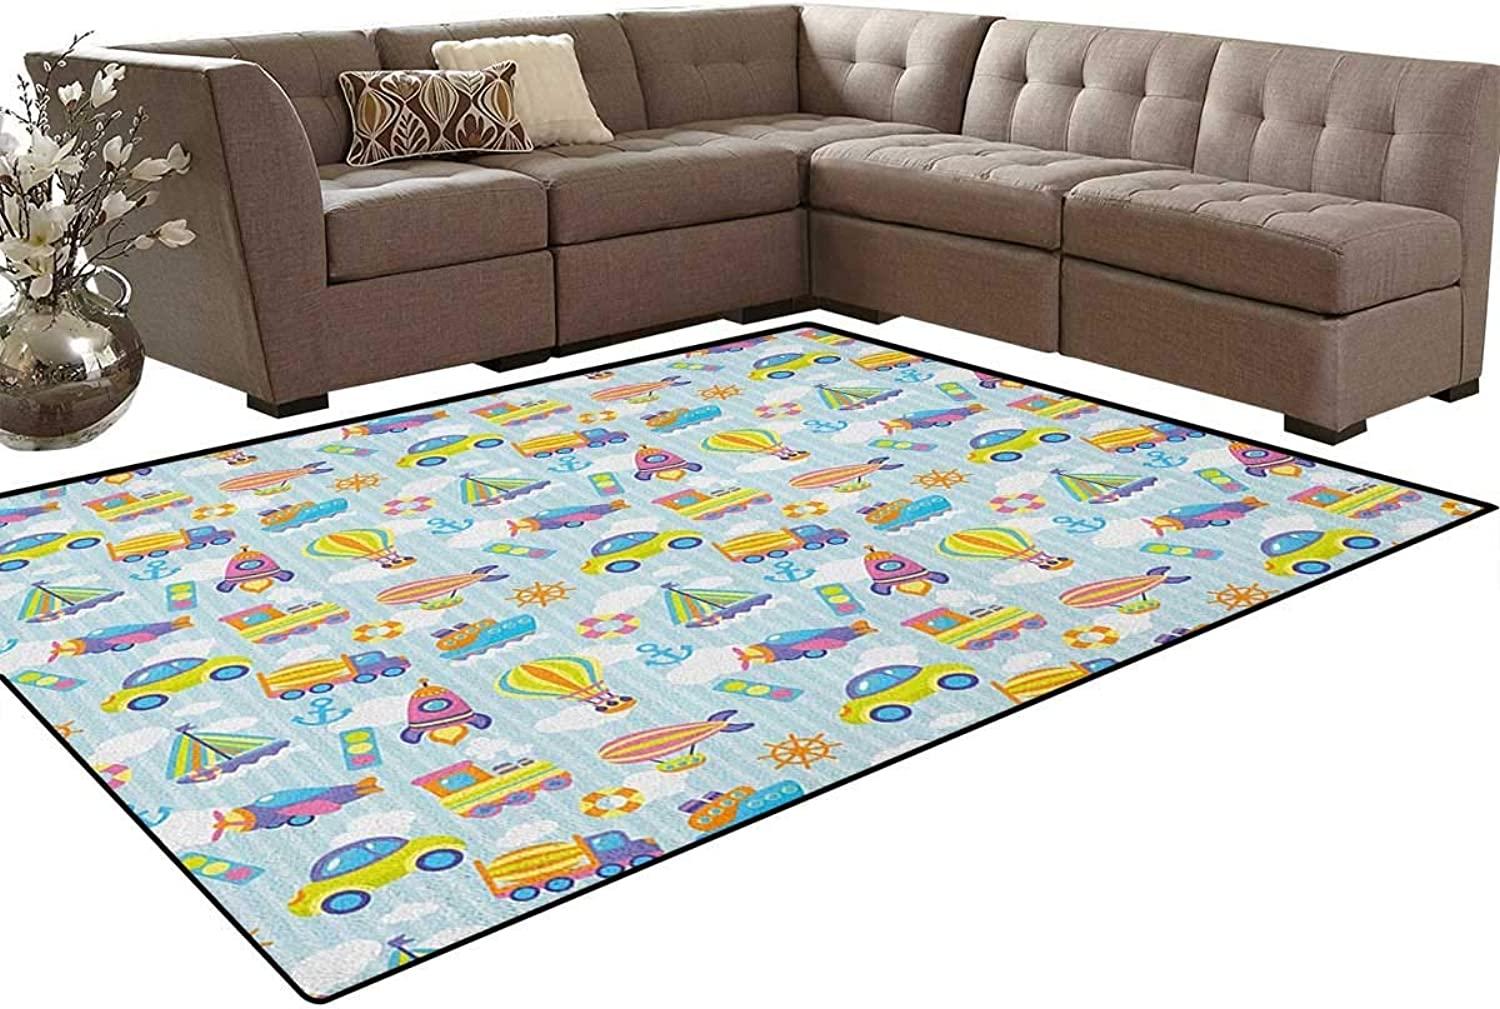 Transportation Themed Toy Vehicles and Icons Pattern on Stripes and Fluffy Clouds Floor Mat Rug Indoor Front Door Kitchen and Living Room Bedroom Mats Rubber Non Slip